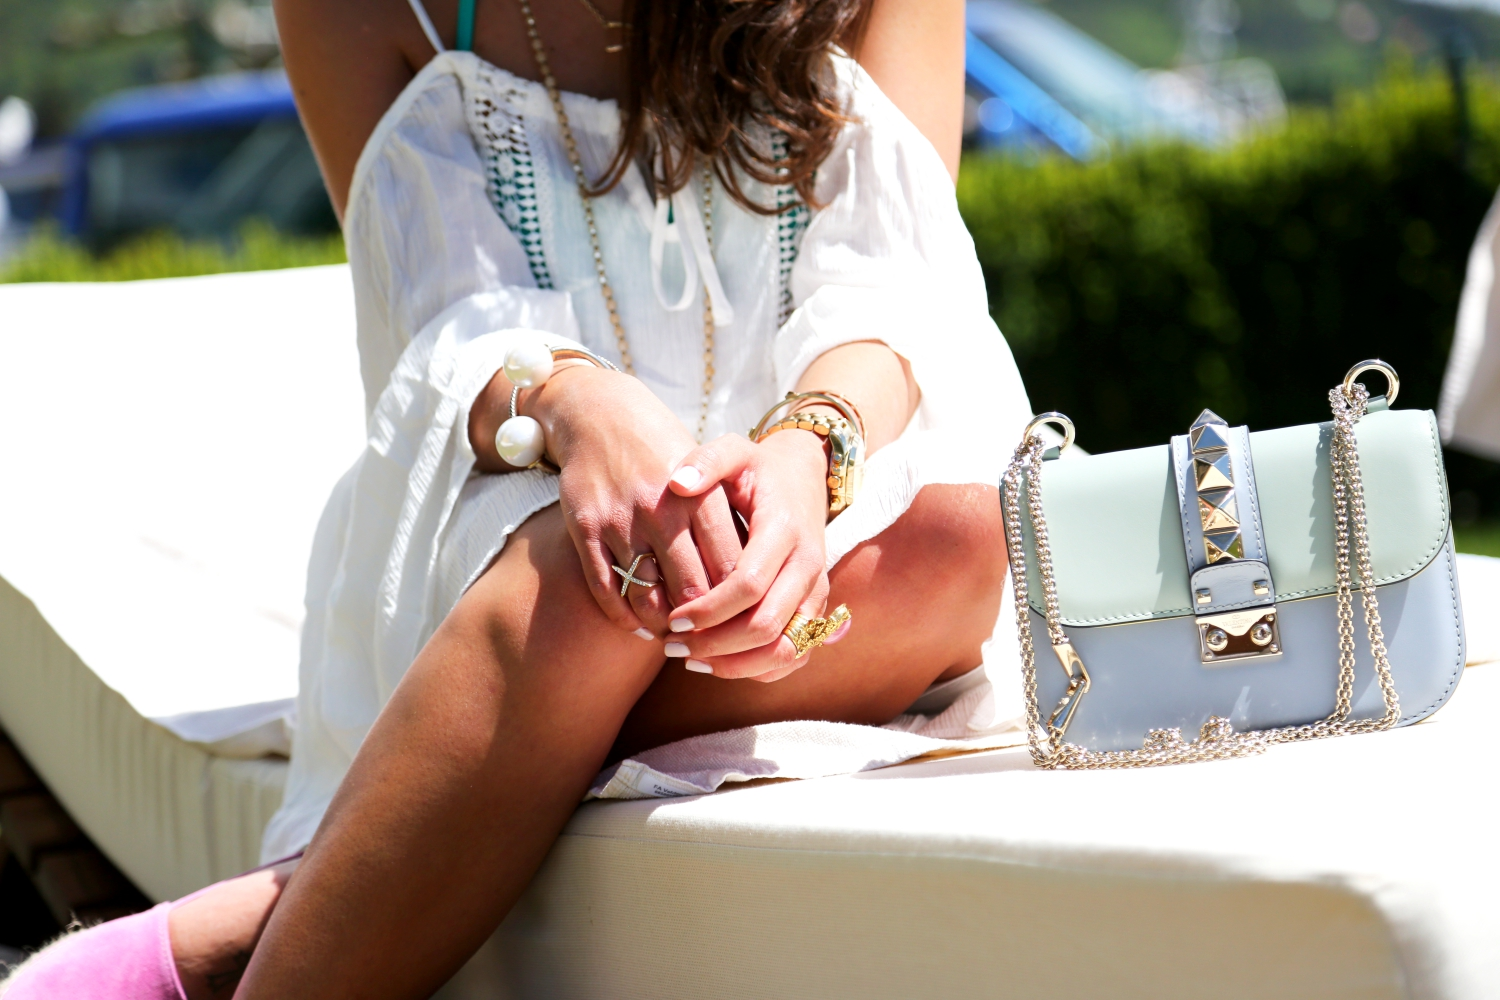 outfit-details-beach-spa-look-valentino-glam-lock-bag-pastels-watercolors-espadrilles-jewelry-ysl-arty-ring